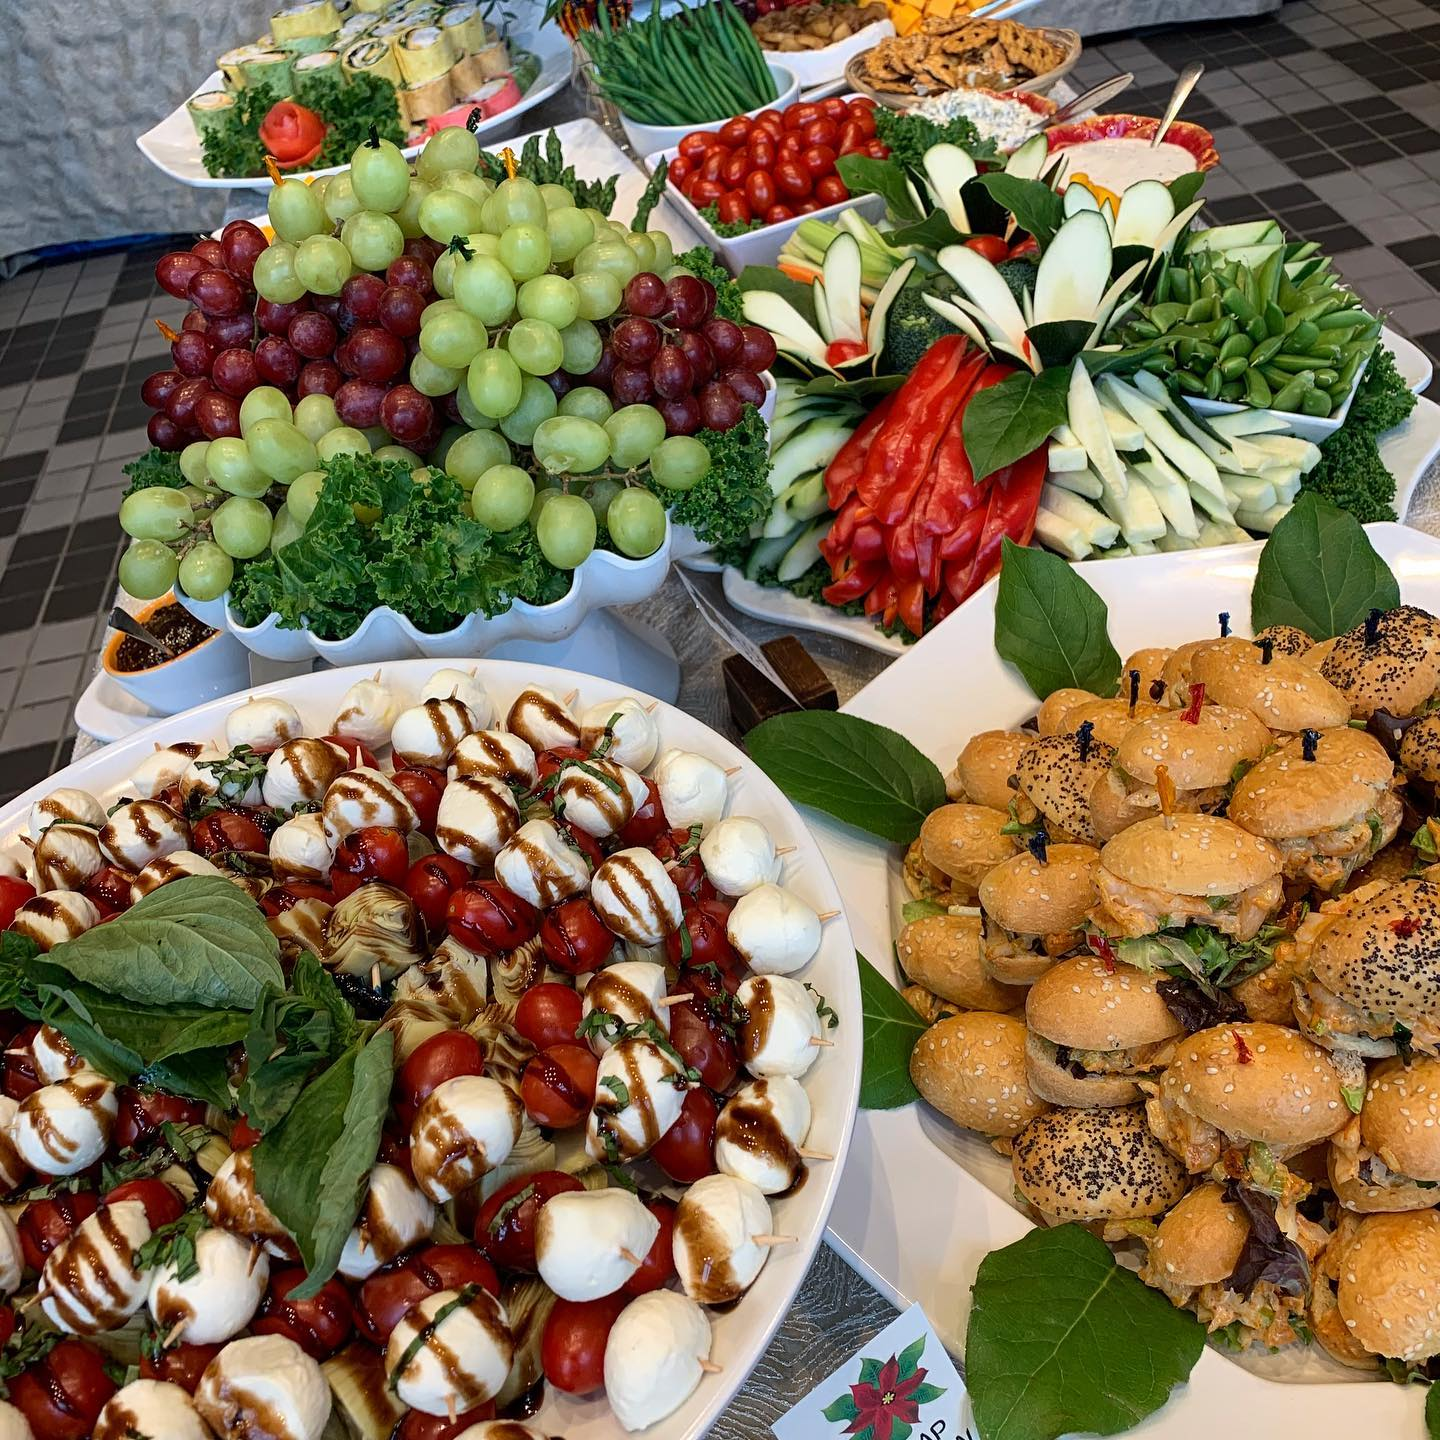 assorted fruits, salads and appetizer platters for an event